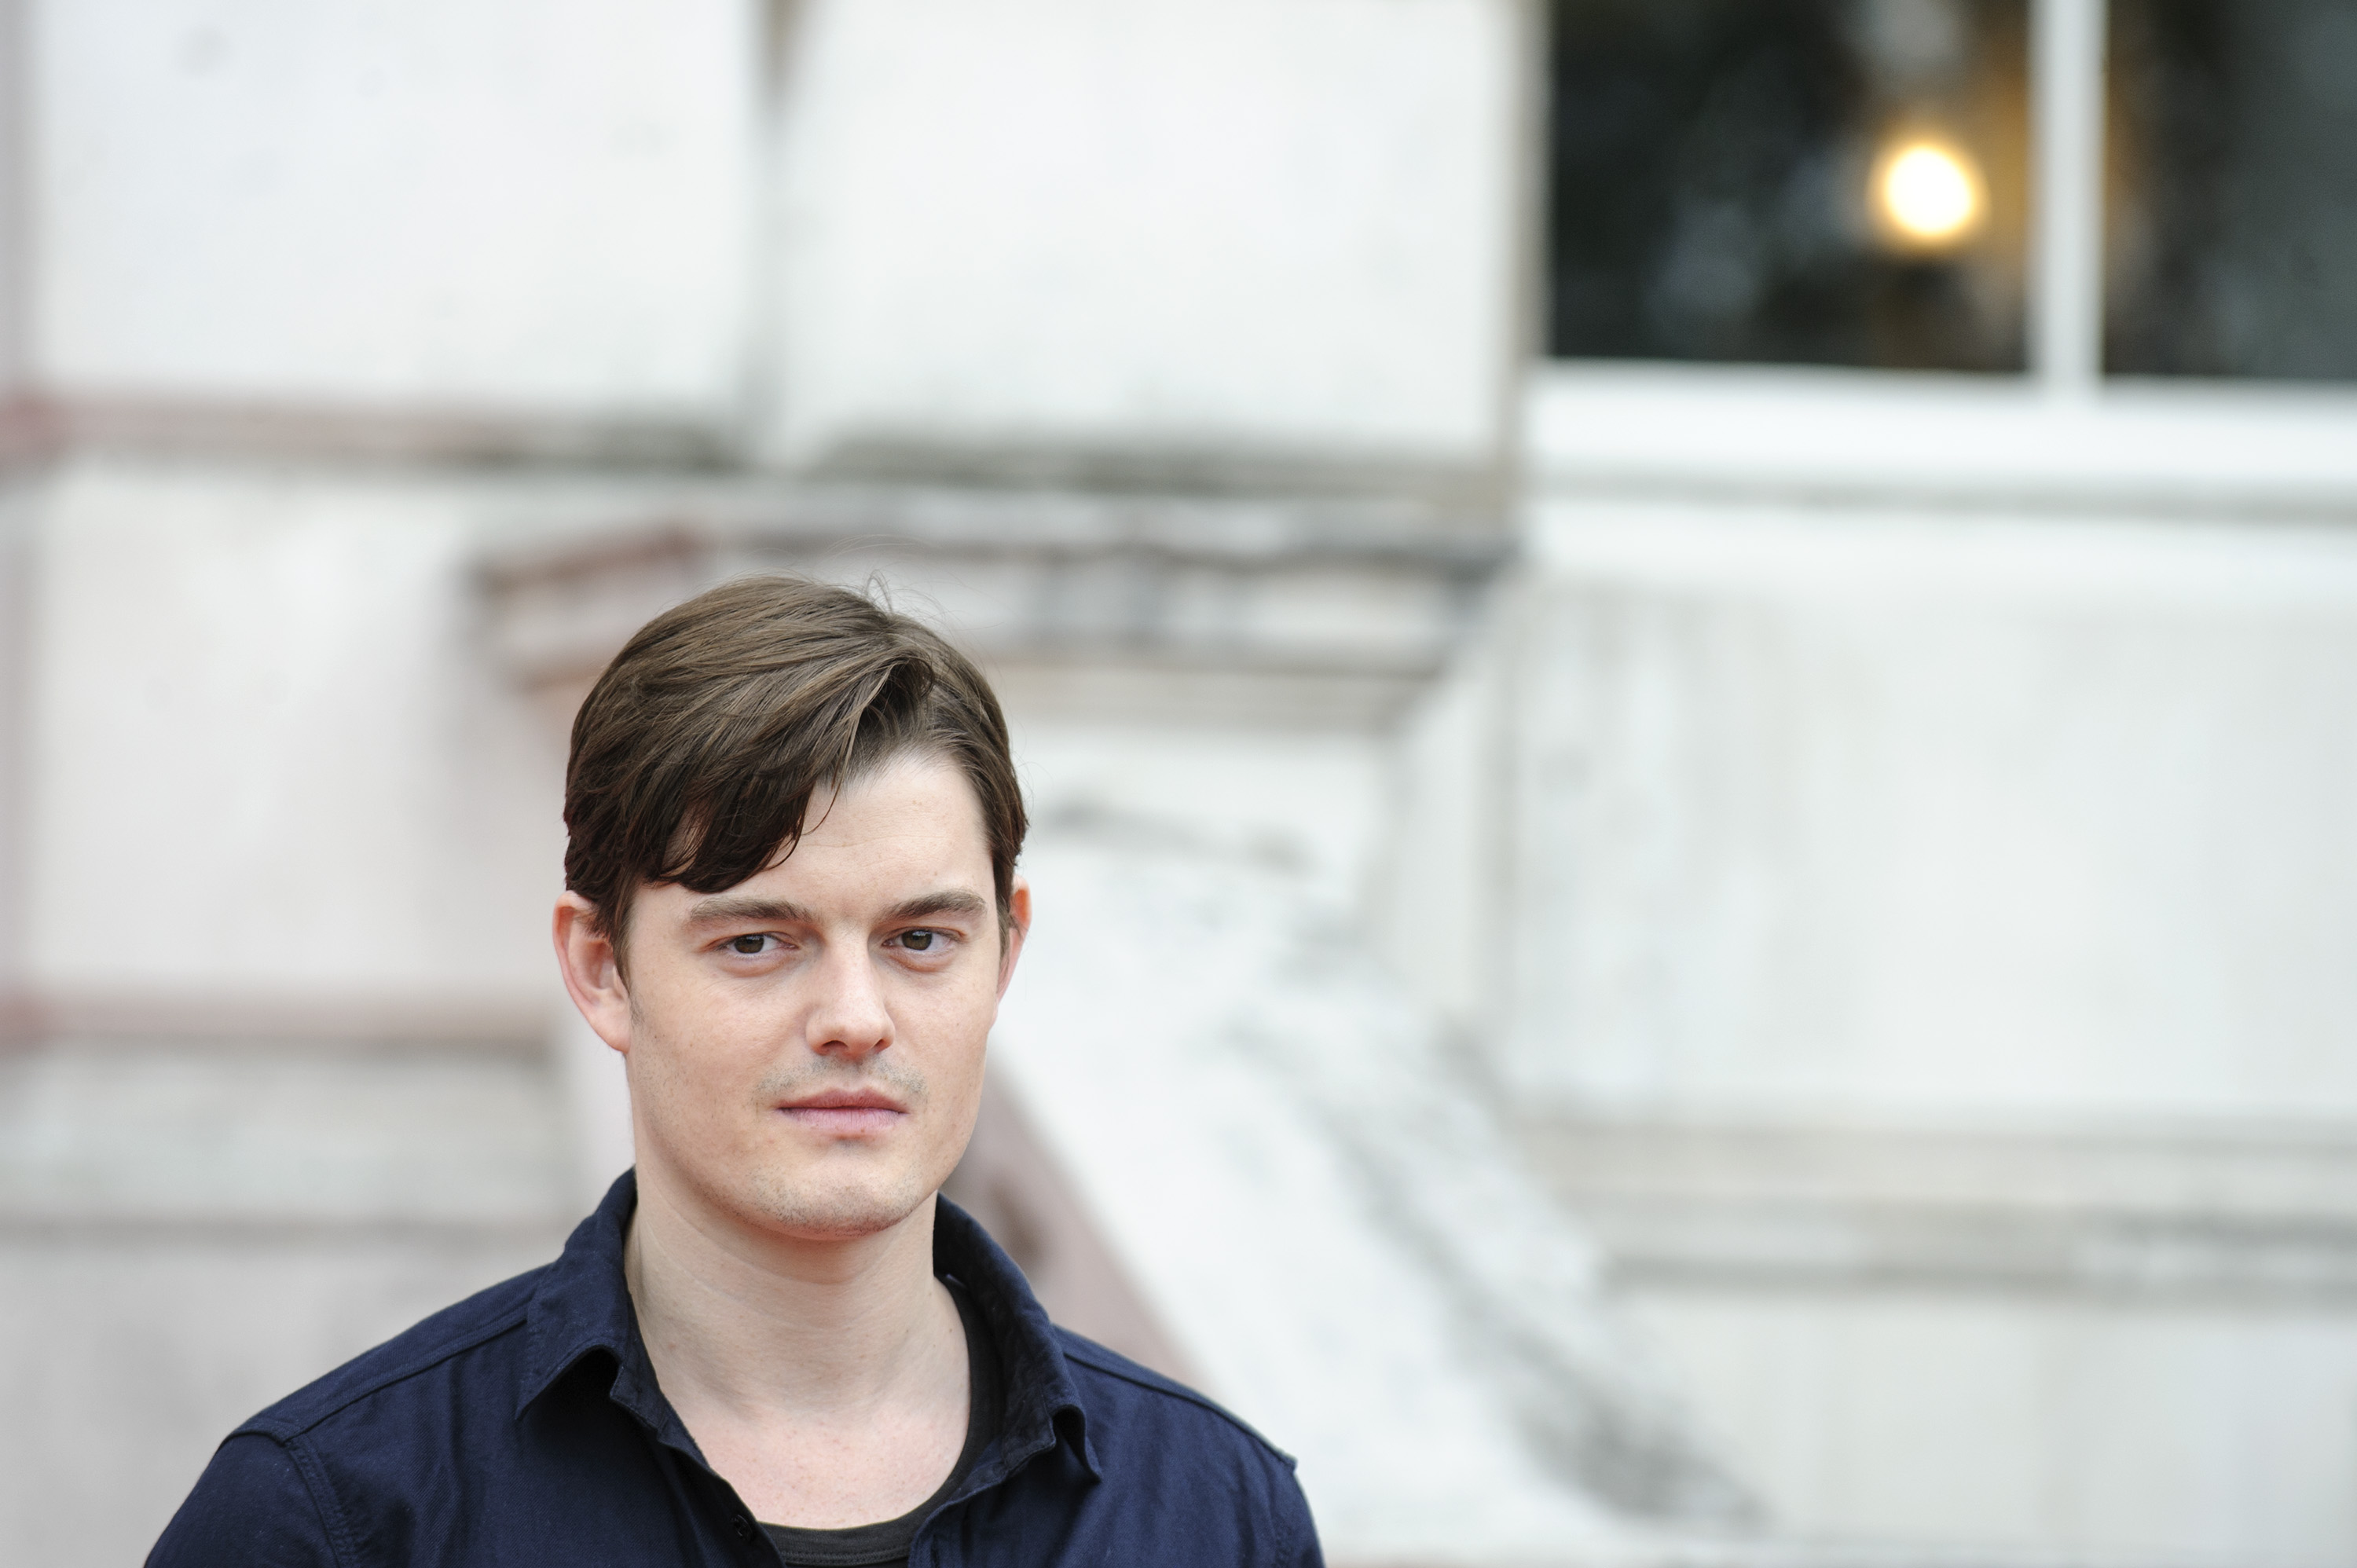 Sam Riley at the premiere of his film in London.